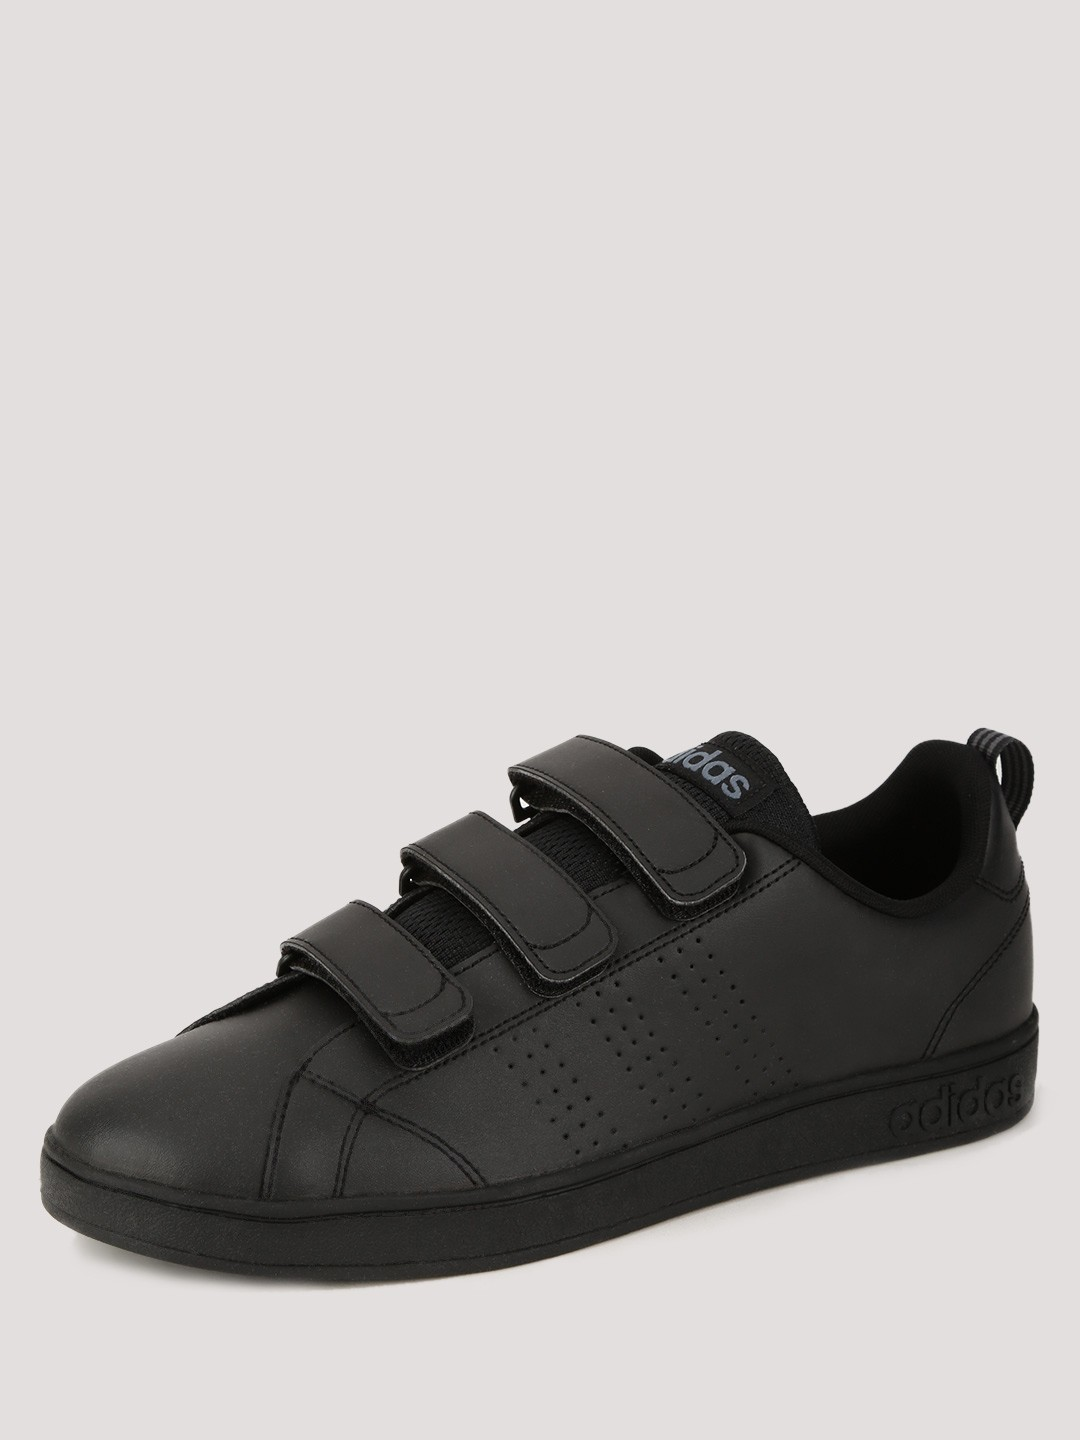 buy adidas neo advantage clean synthetic leather shoes for